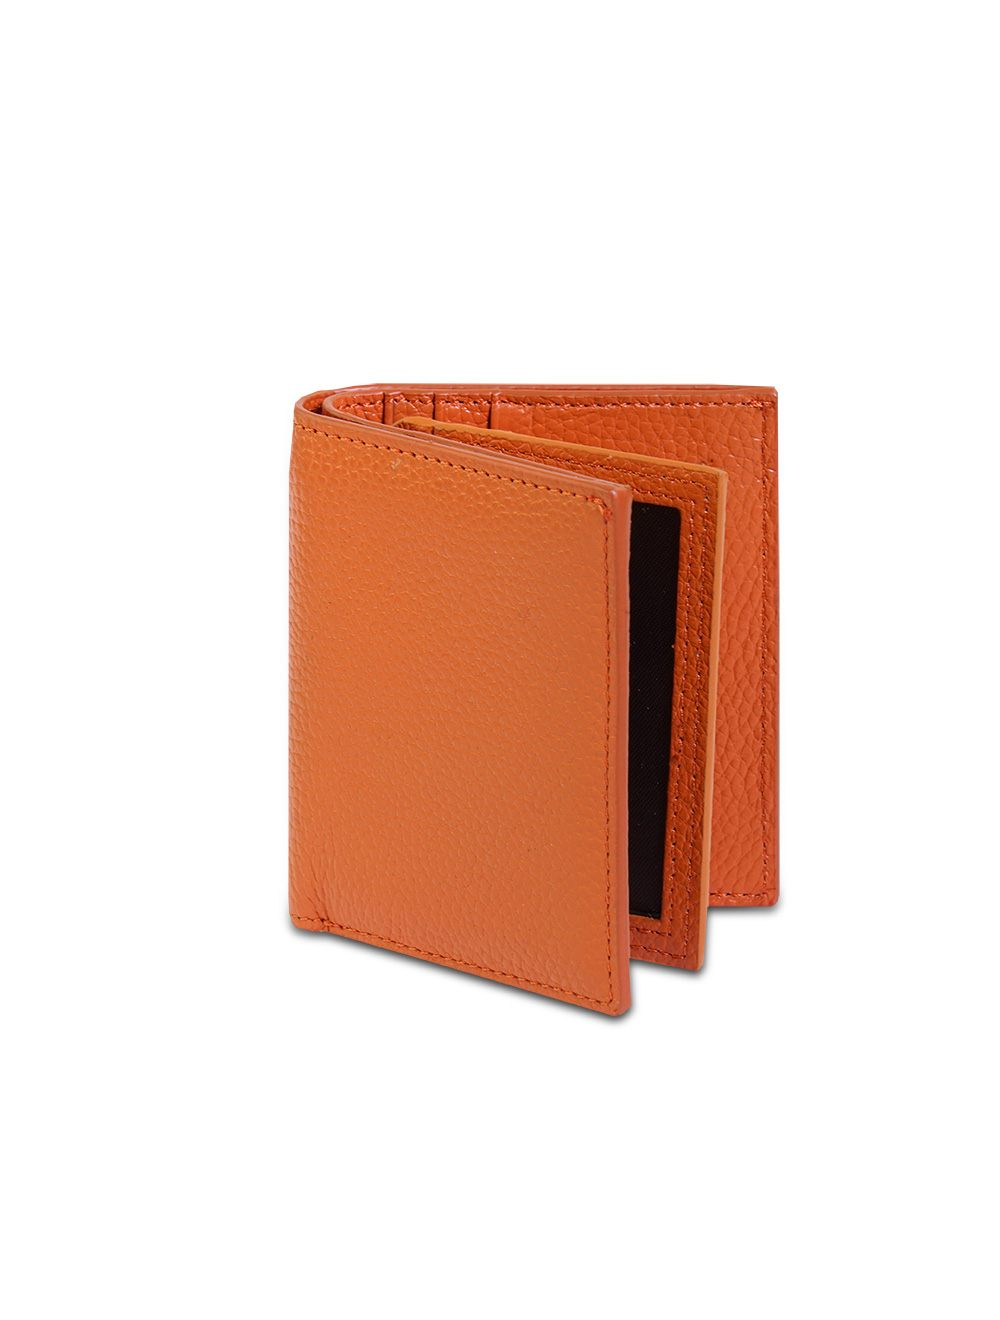 Credit Card Holder Leather